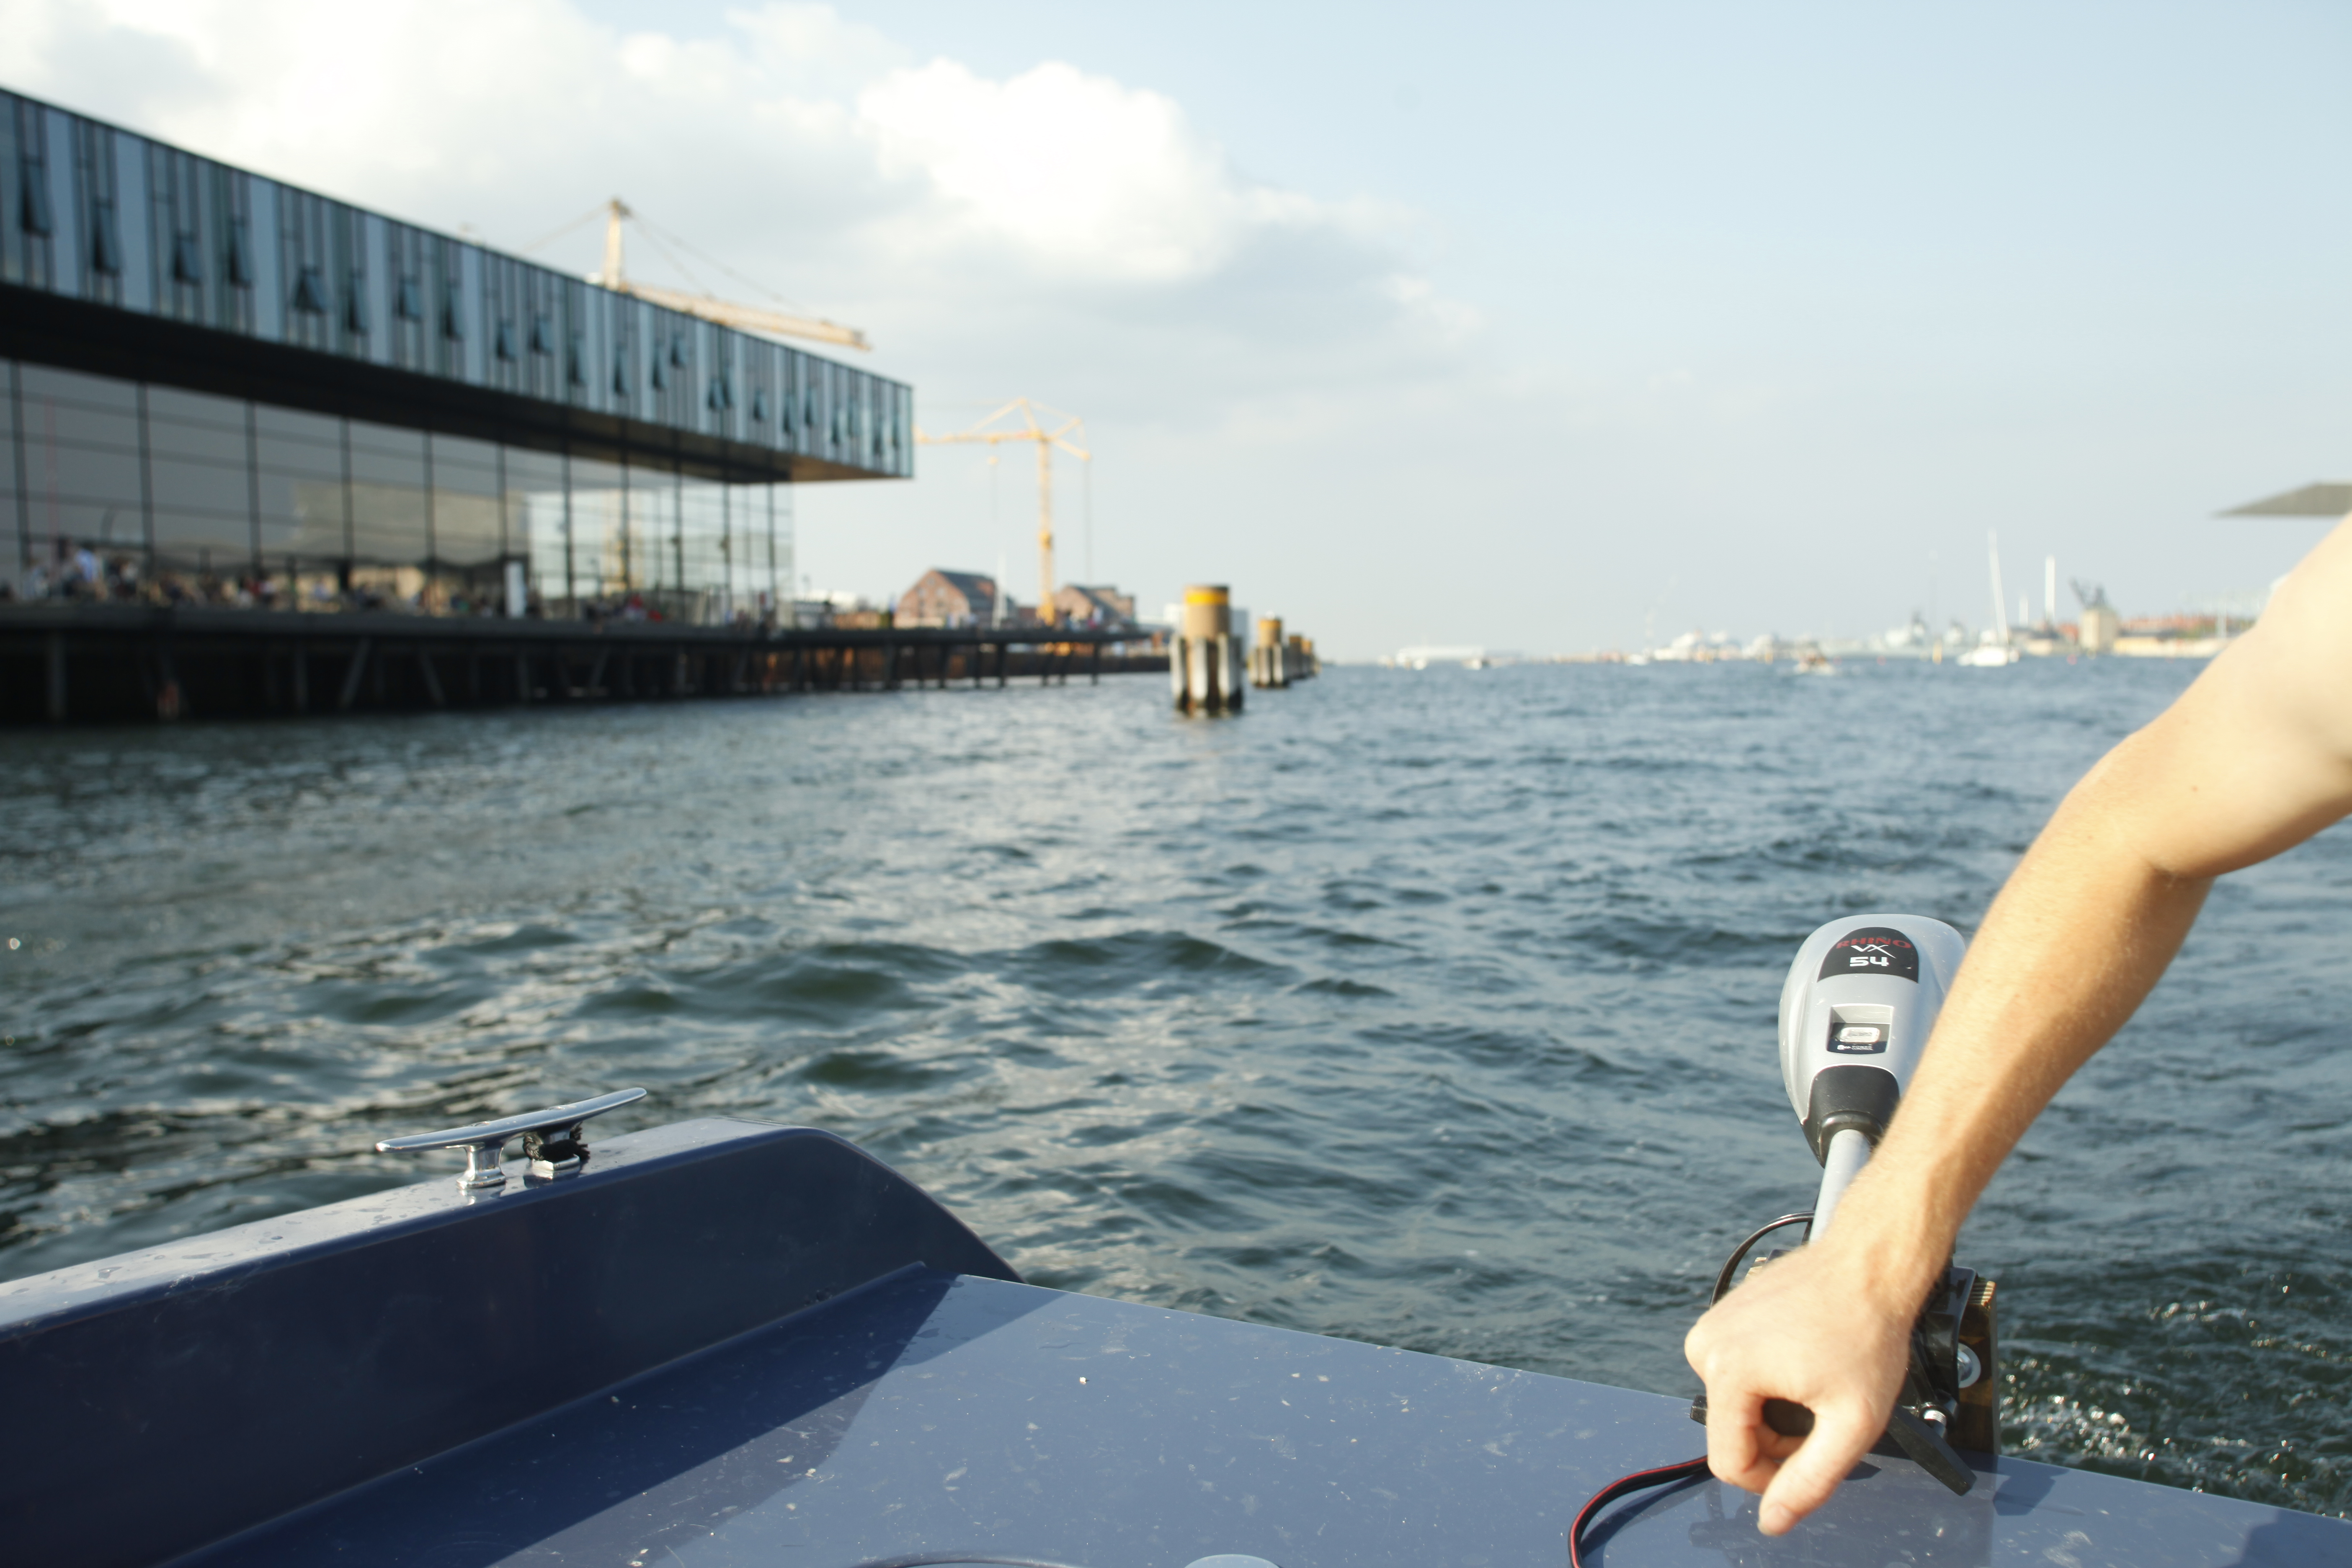 Go Boat - Blue Boat - Tourist Things To Do and See in Copenhagen | Scandinavia Standard